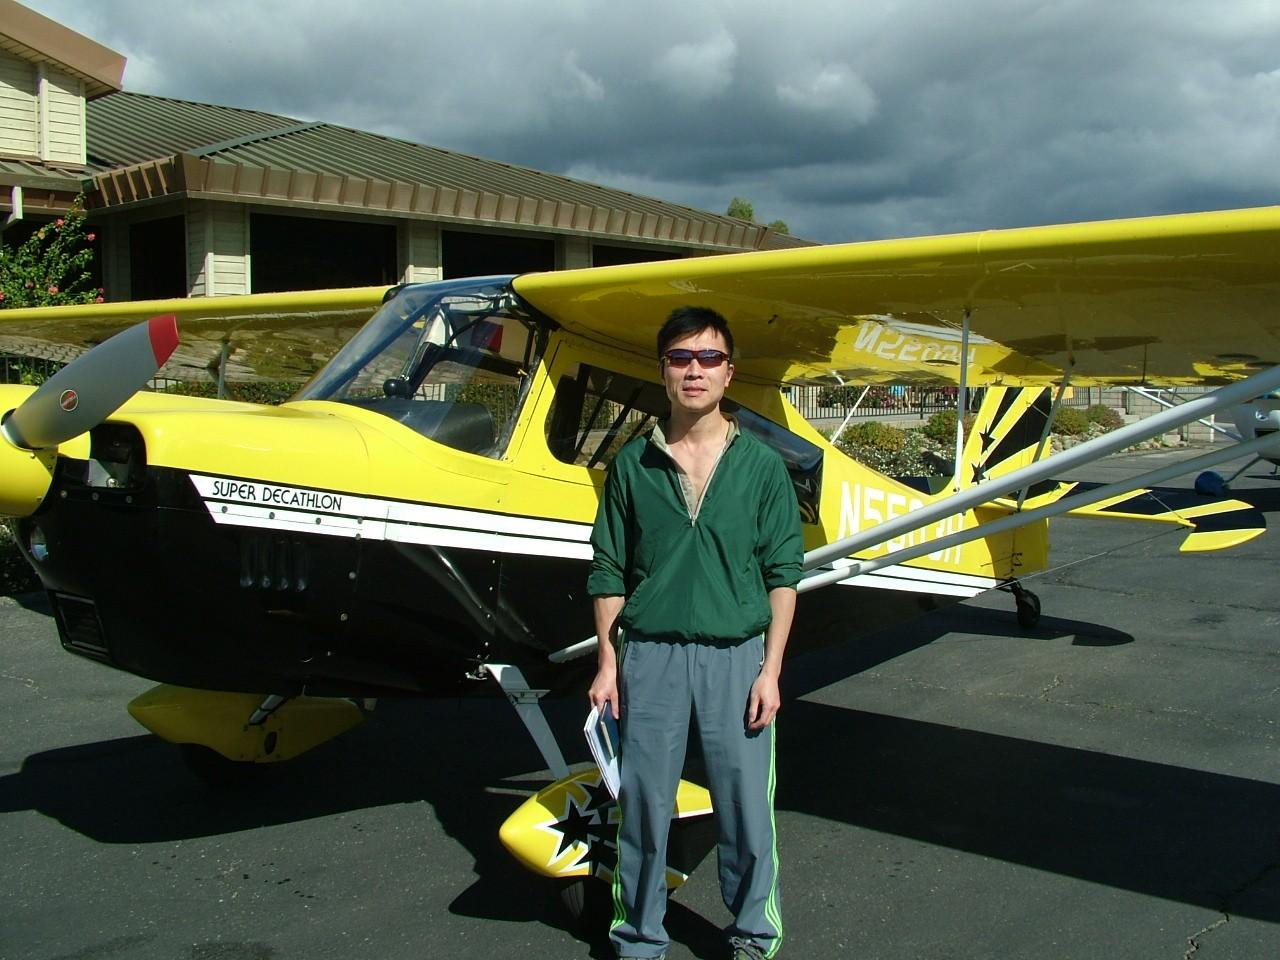 Emergency Maneuver Training and Tailwheel Endorsement - Sonny Young